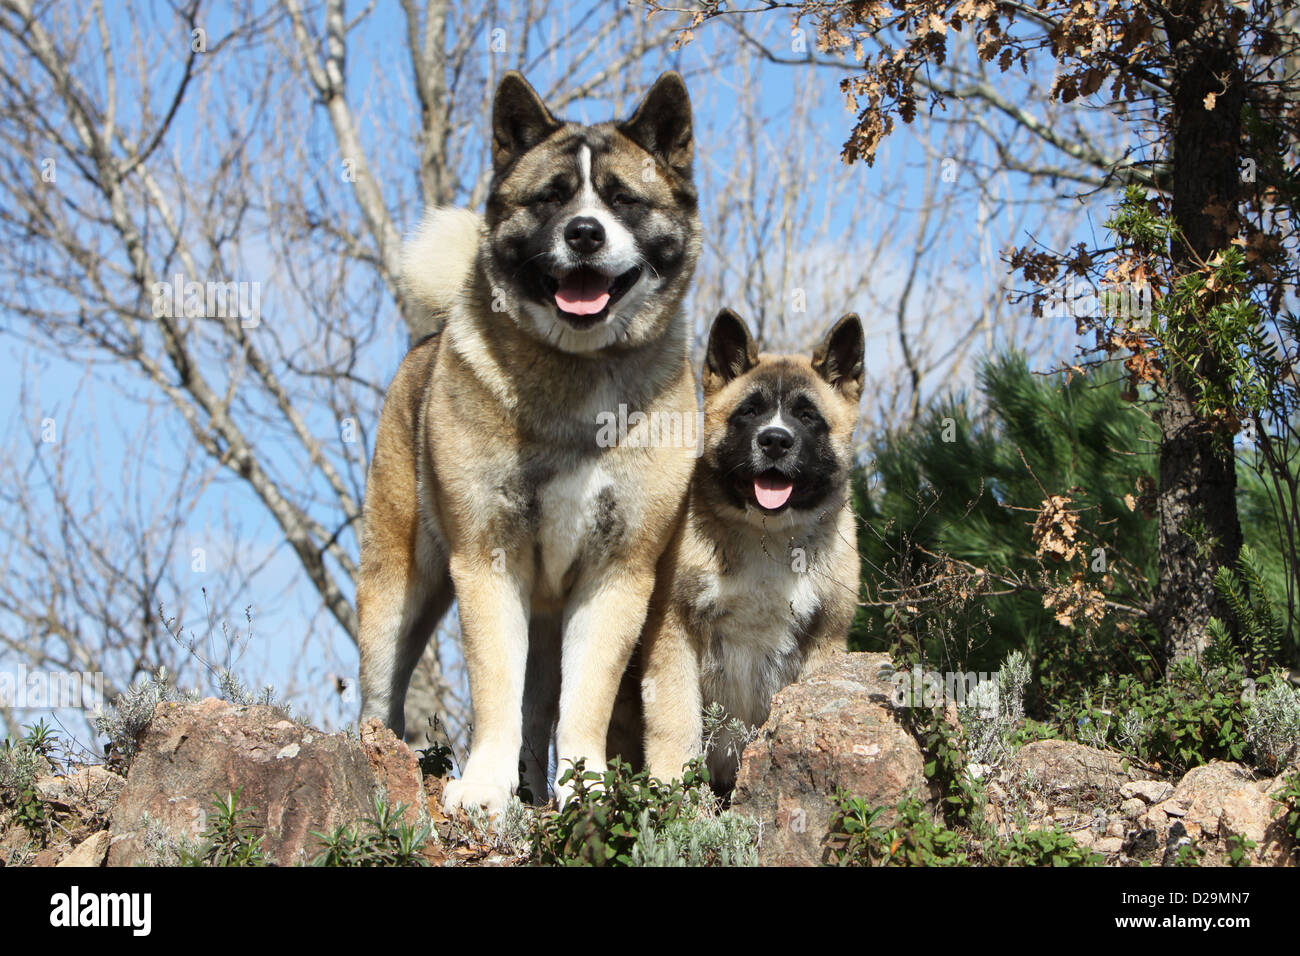 Dog American Akita Great Japanese Dog Adult And Puppy In